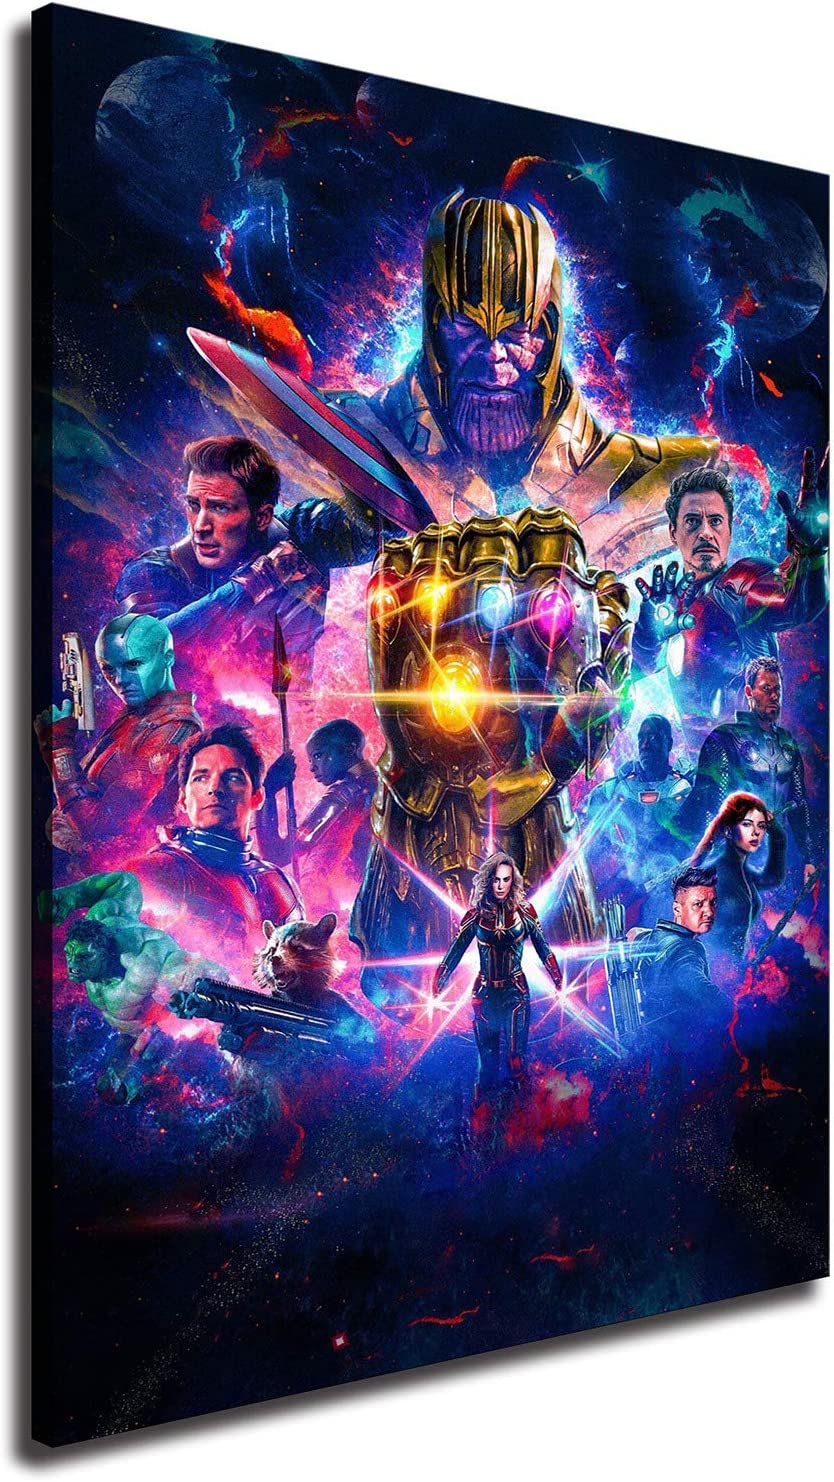 35% OFF Avengers Posters High-Definition Canvas Boston Mall Print for S Art